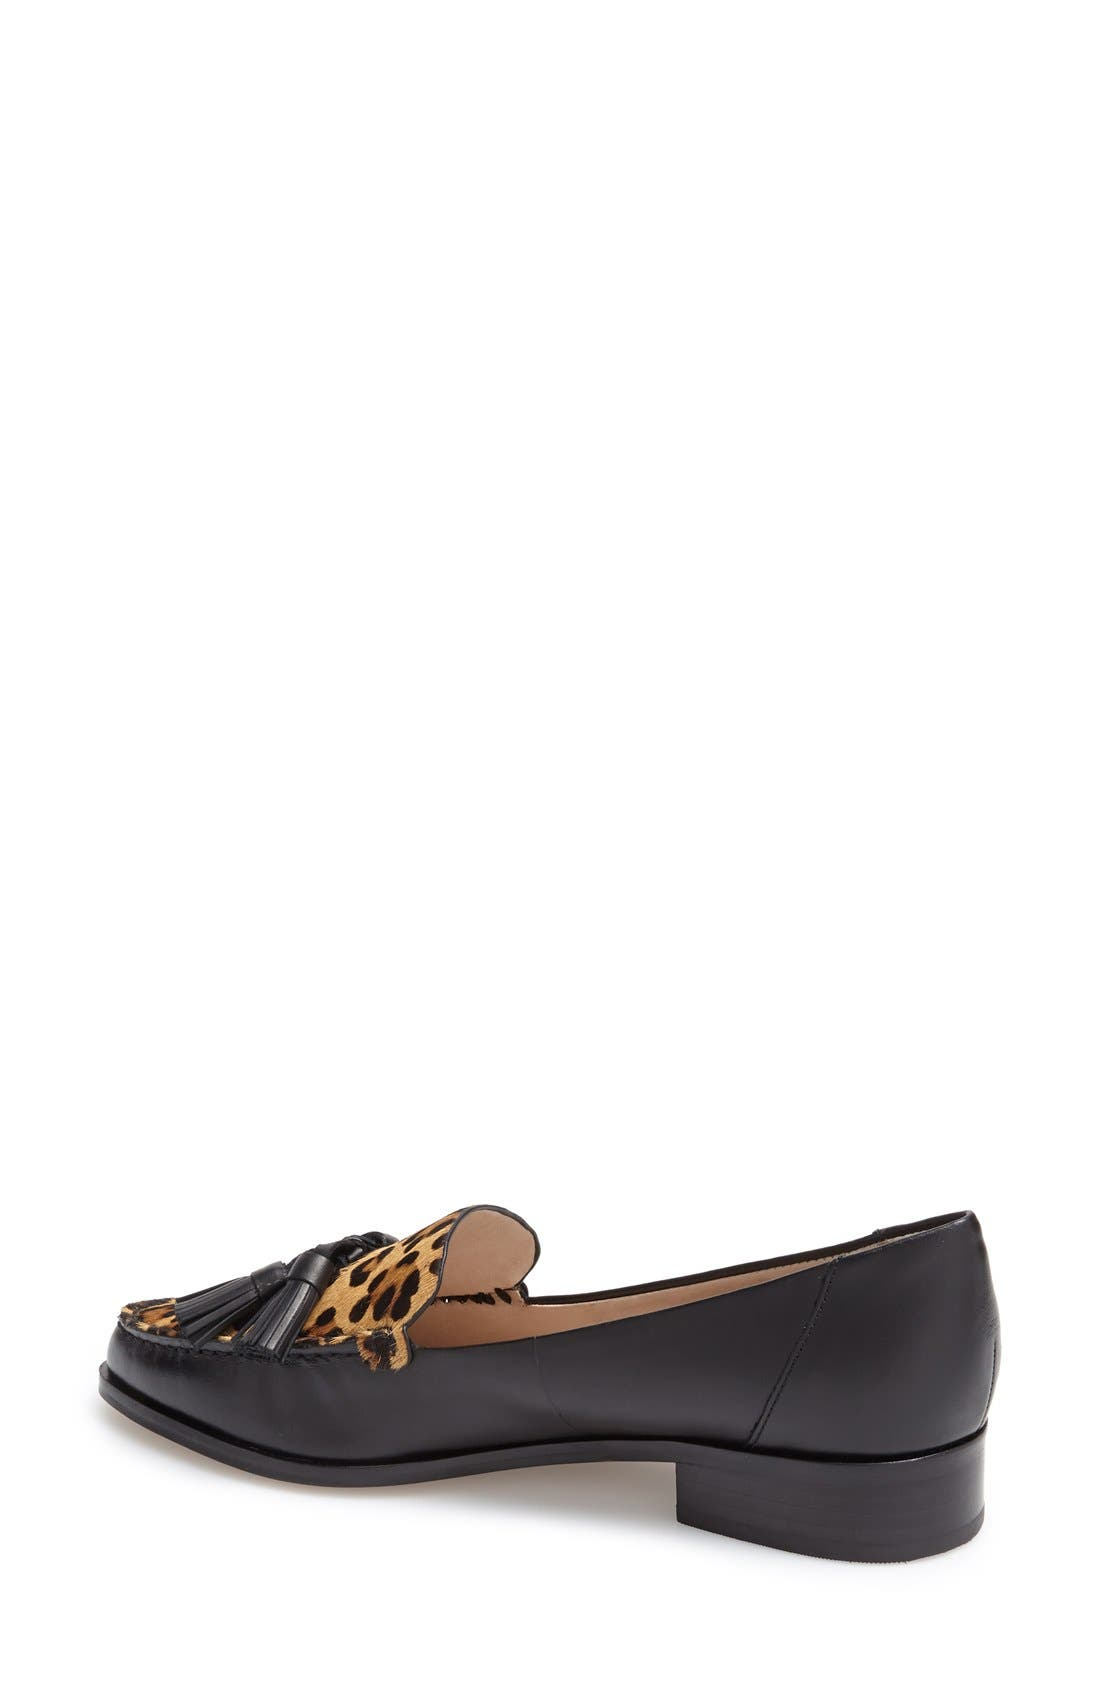 Alternate Image 2  - French Connection 'Lonnie' Tassel Loafer (Women)